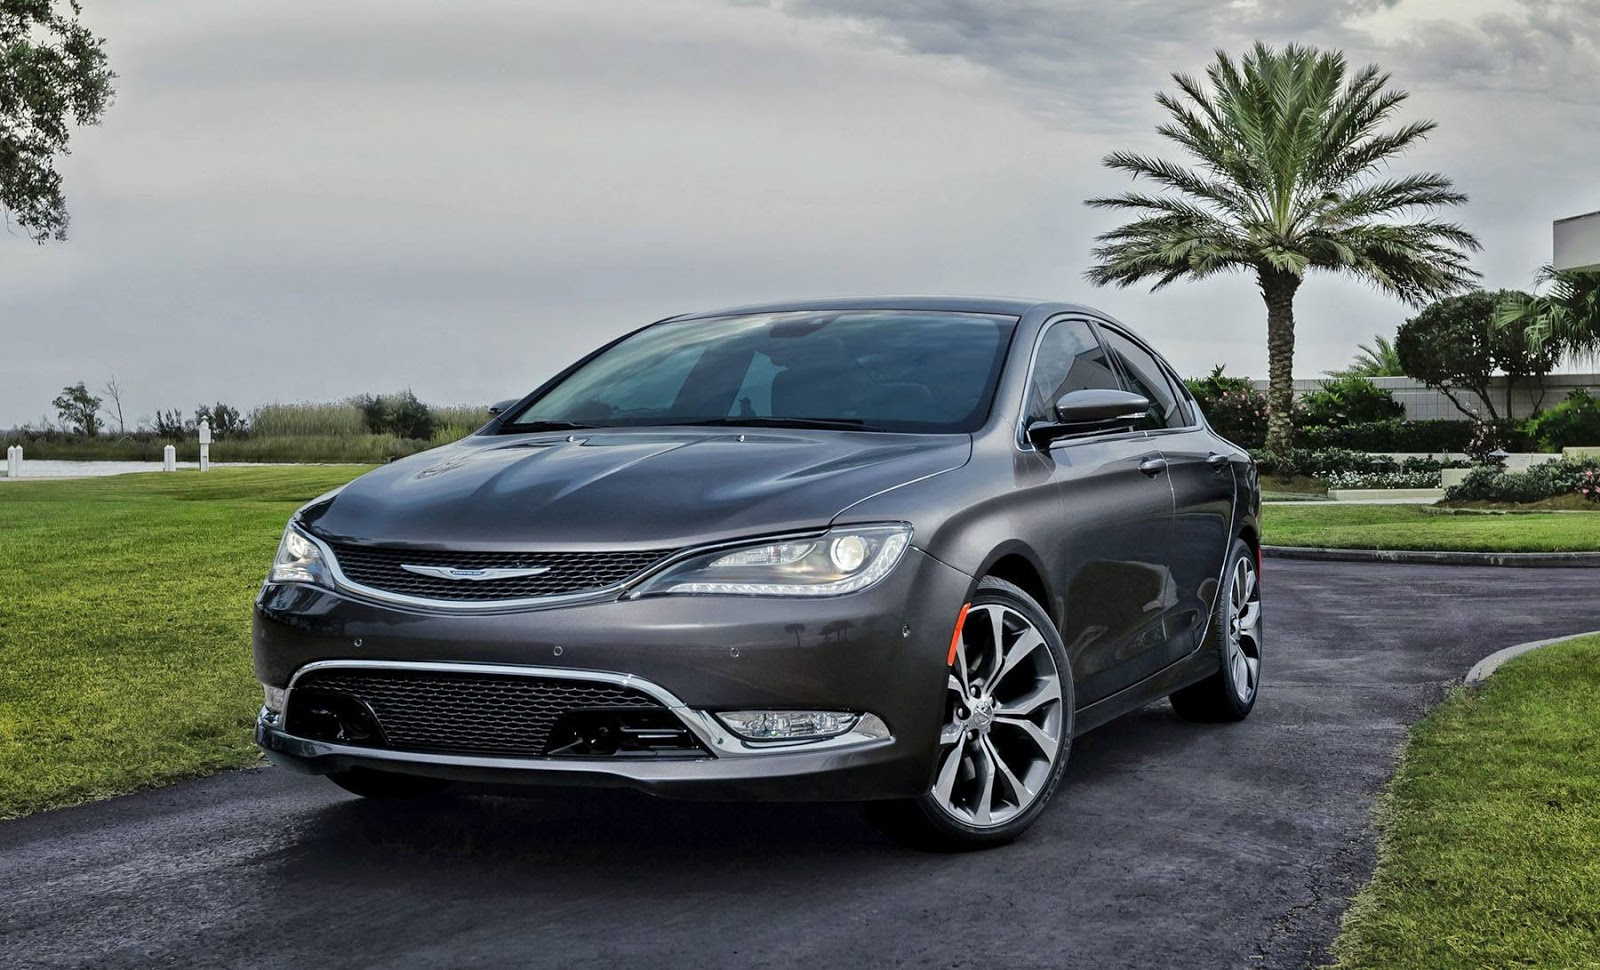 2015 chrysler 200 first photos details leaked autoevolution. Black Bedroom Furniture Sets. Home Design Ideas